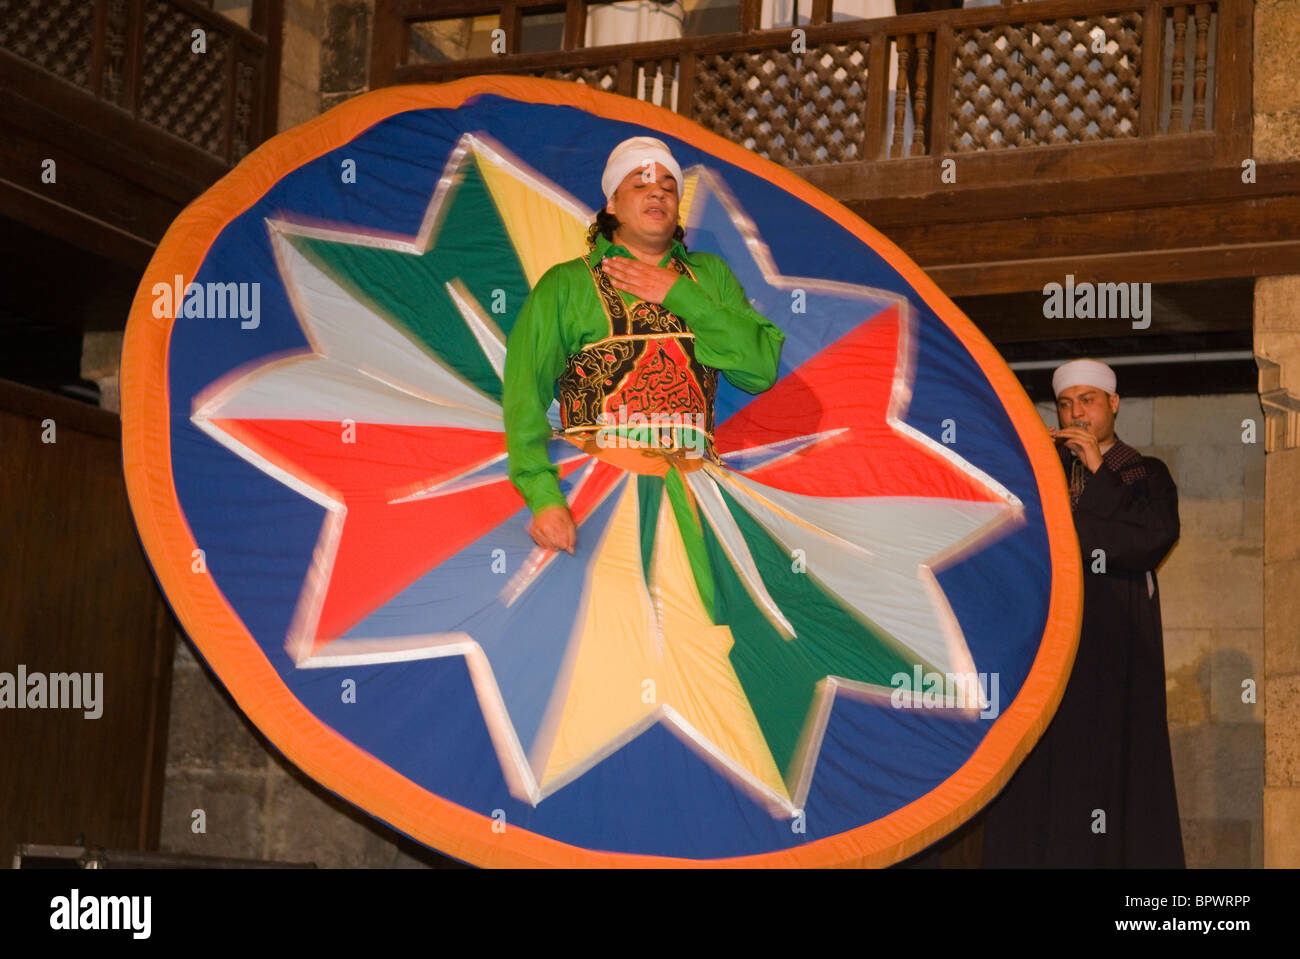 whirling dervish Sufi dancer in motion at performance in Cairo Egypt - Stock Image